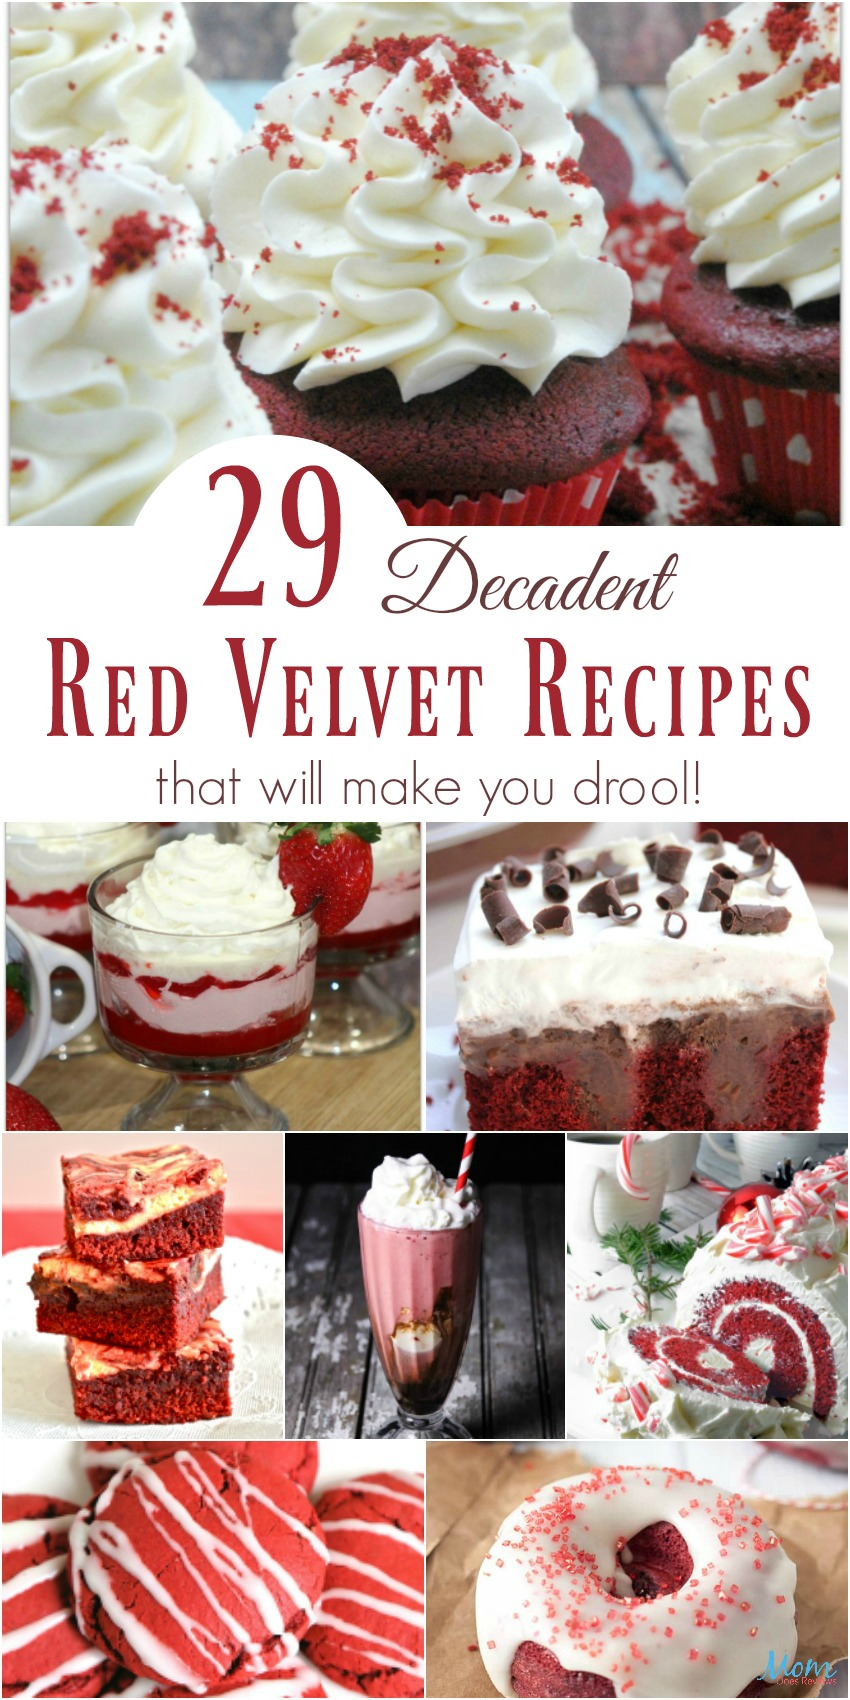 29 Decadent Red Velvet Recipes that will make you Drool #desserts #redvelvet #sweets #recipes #yummy